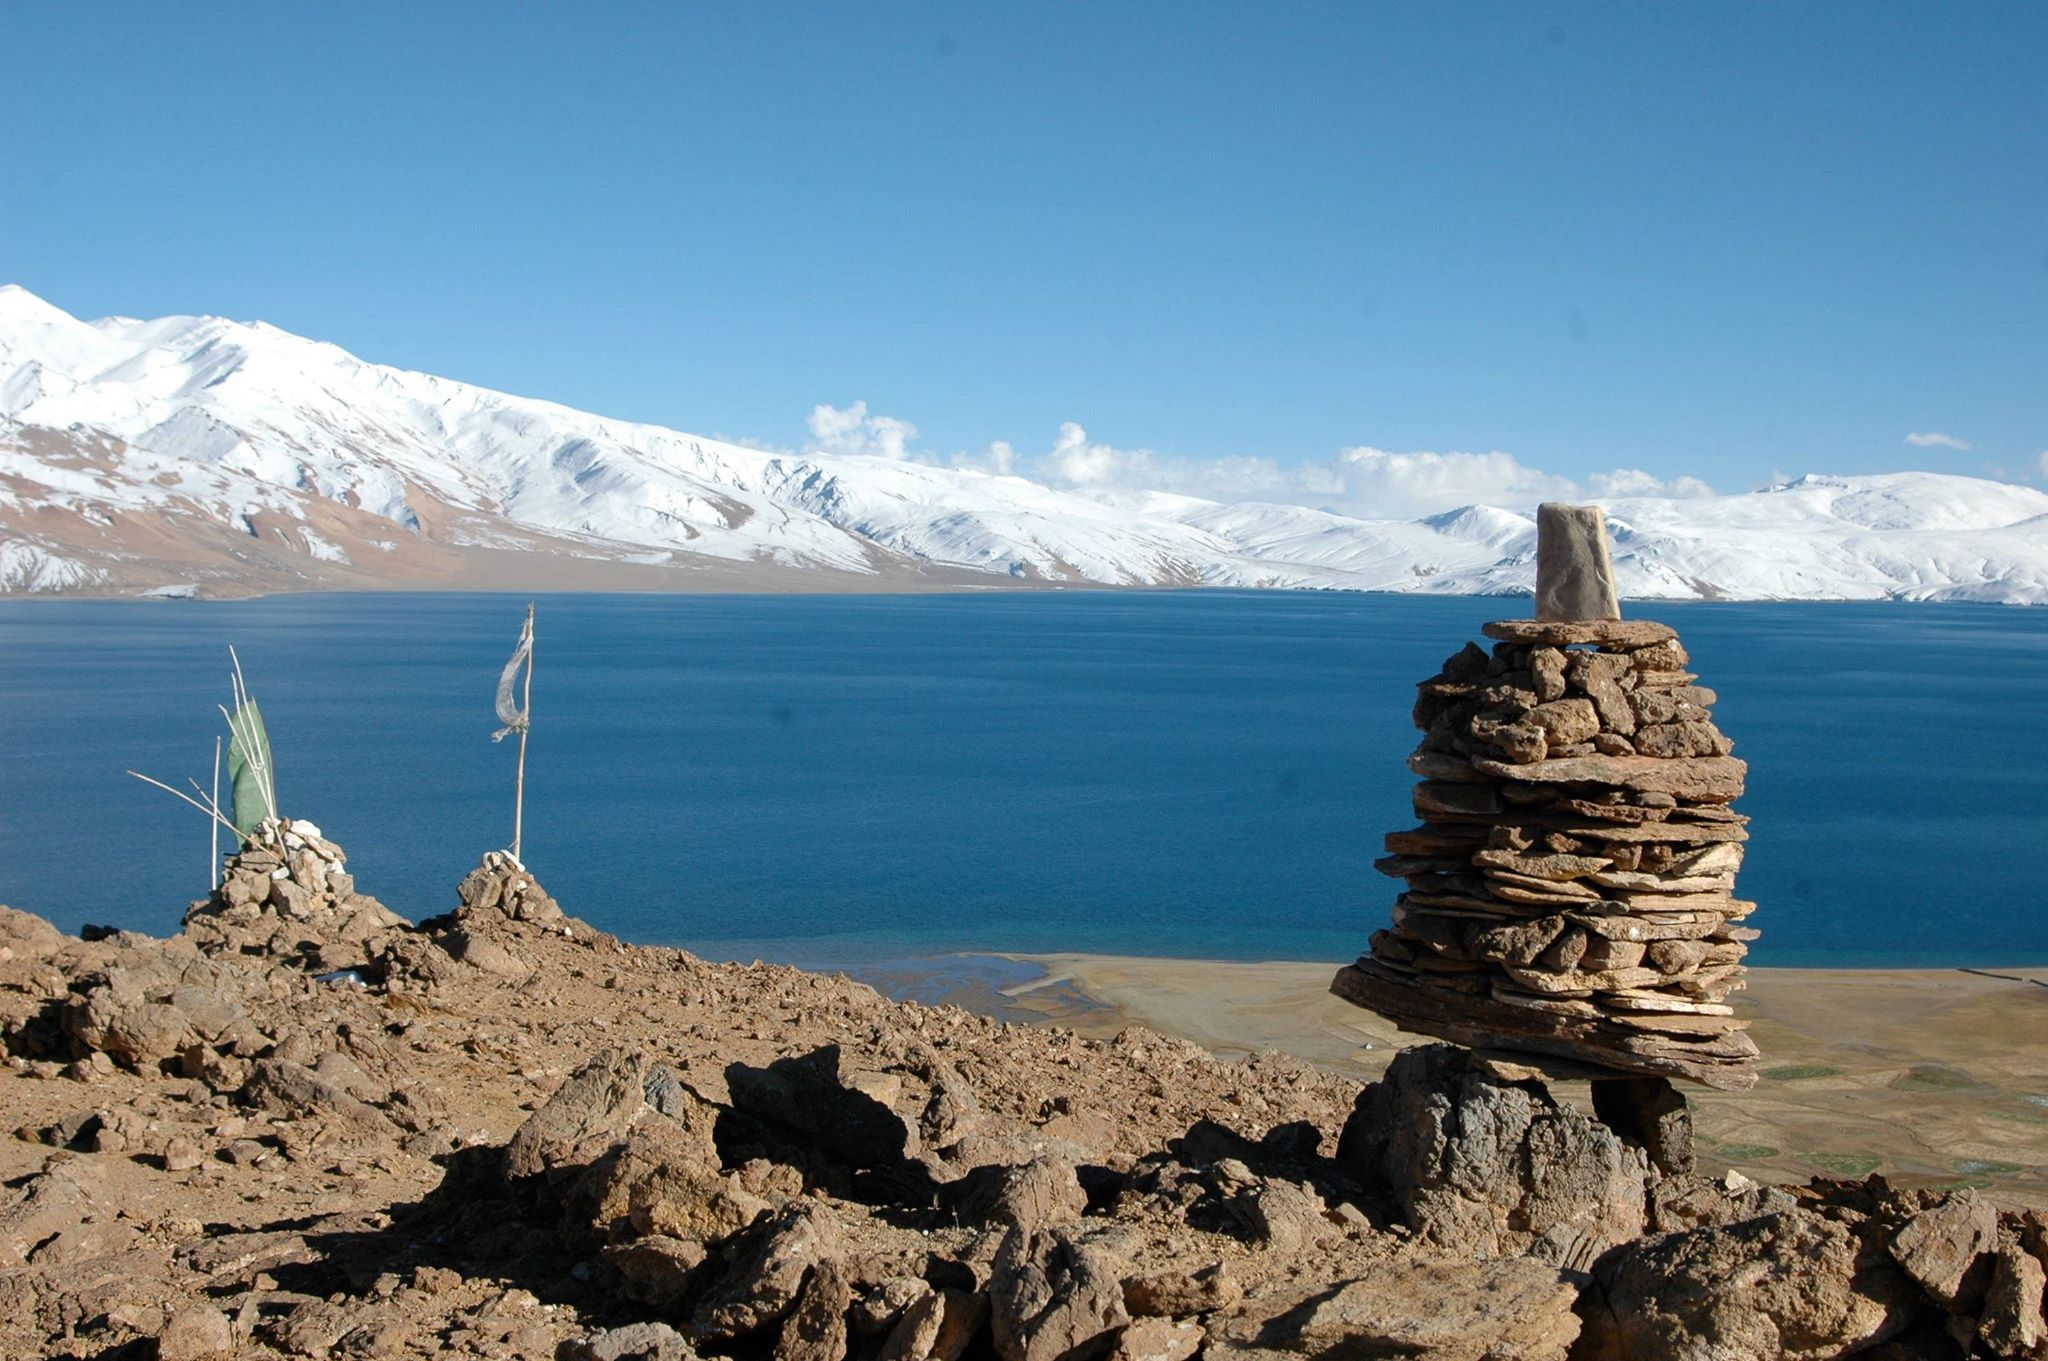 DISCOVER LADAKHI - INDUS VALLEY AND TSOKAR & TSOMORIRI LAKES